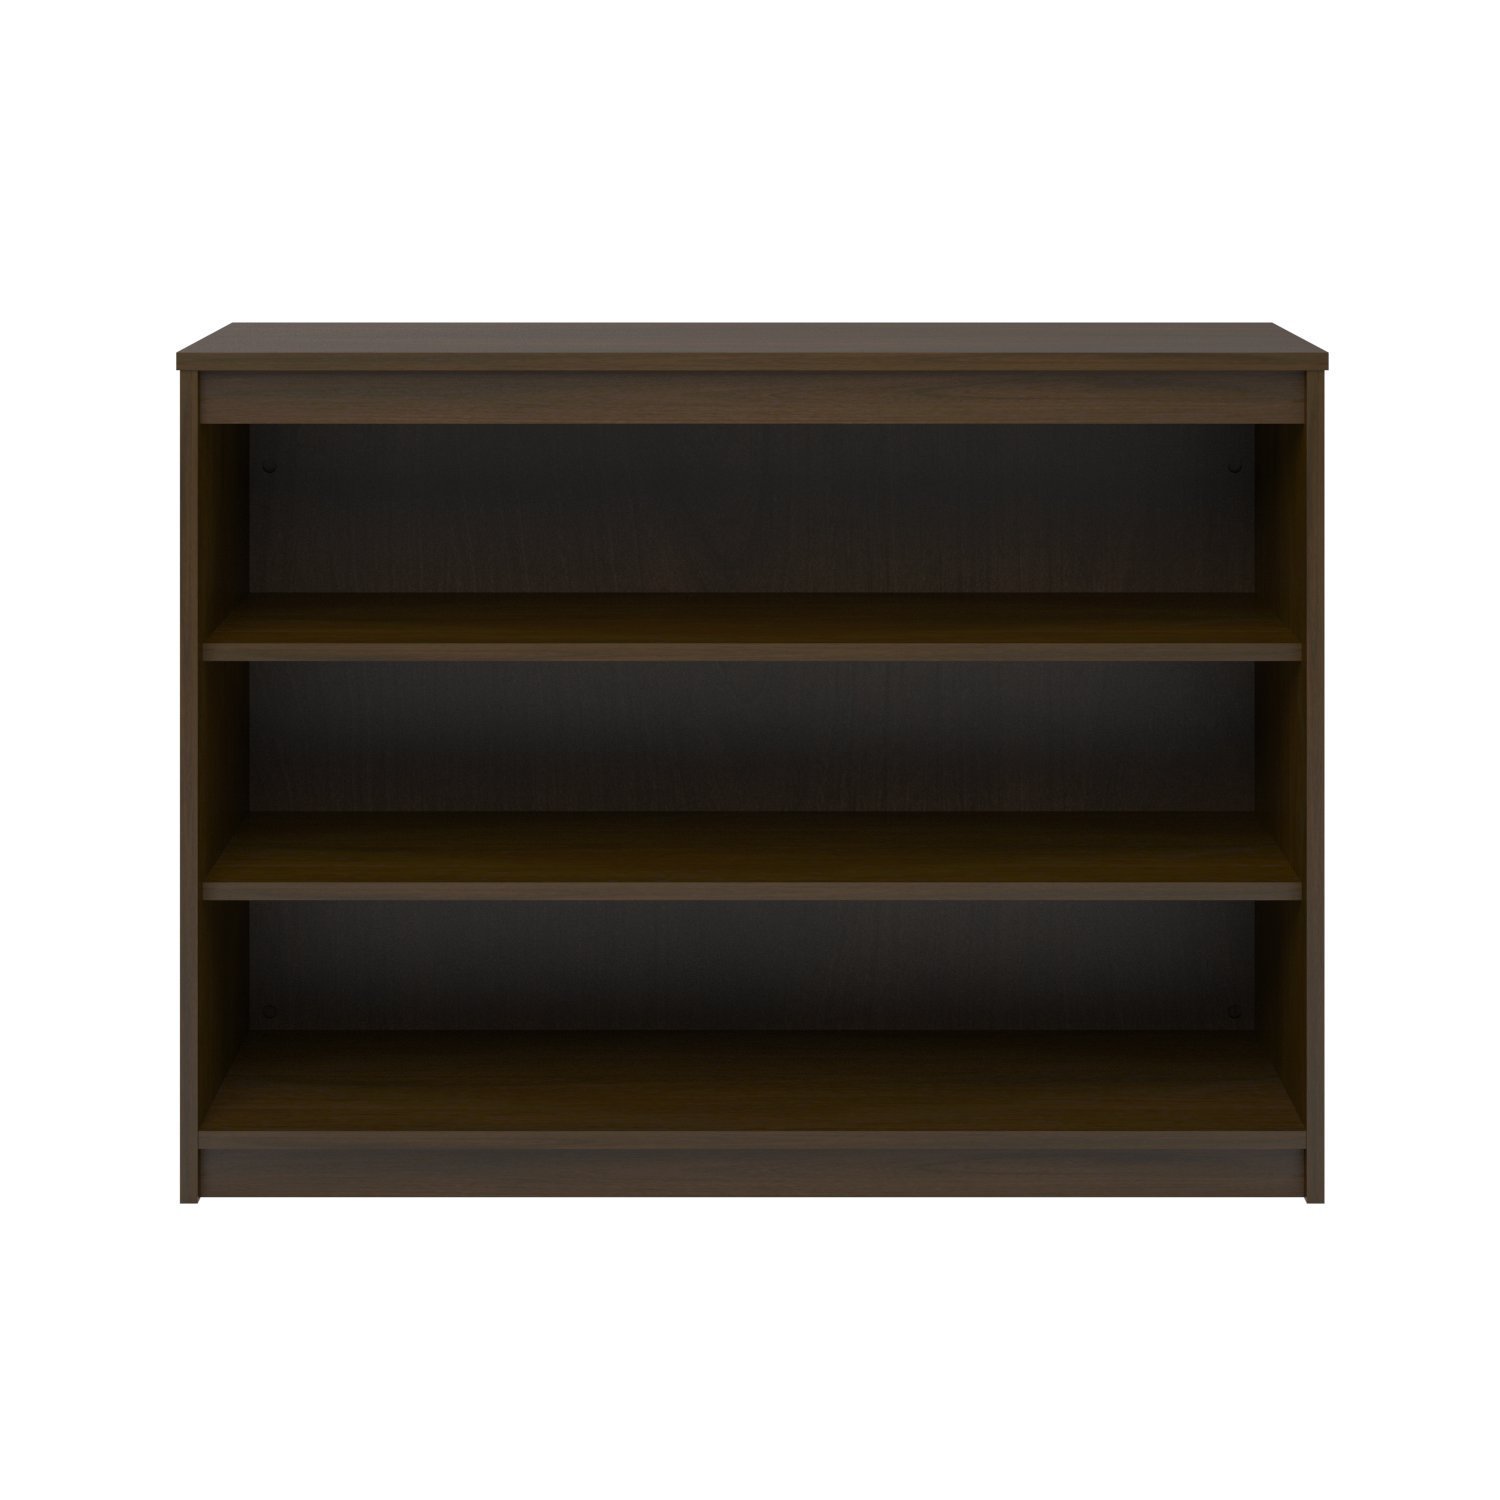 Cosco Products Elements Bookcase, Resort Cherry